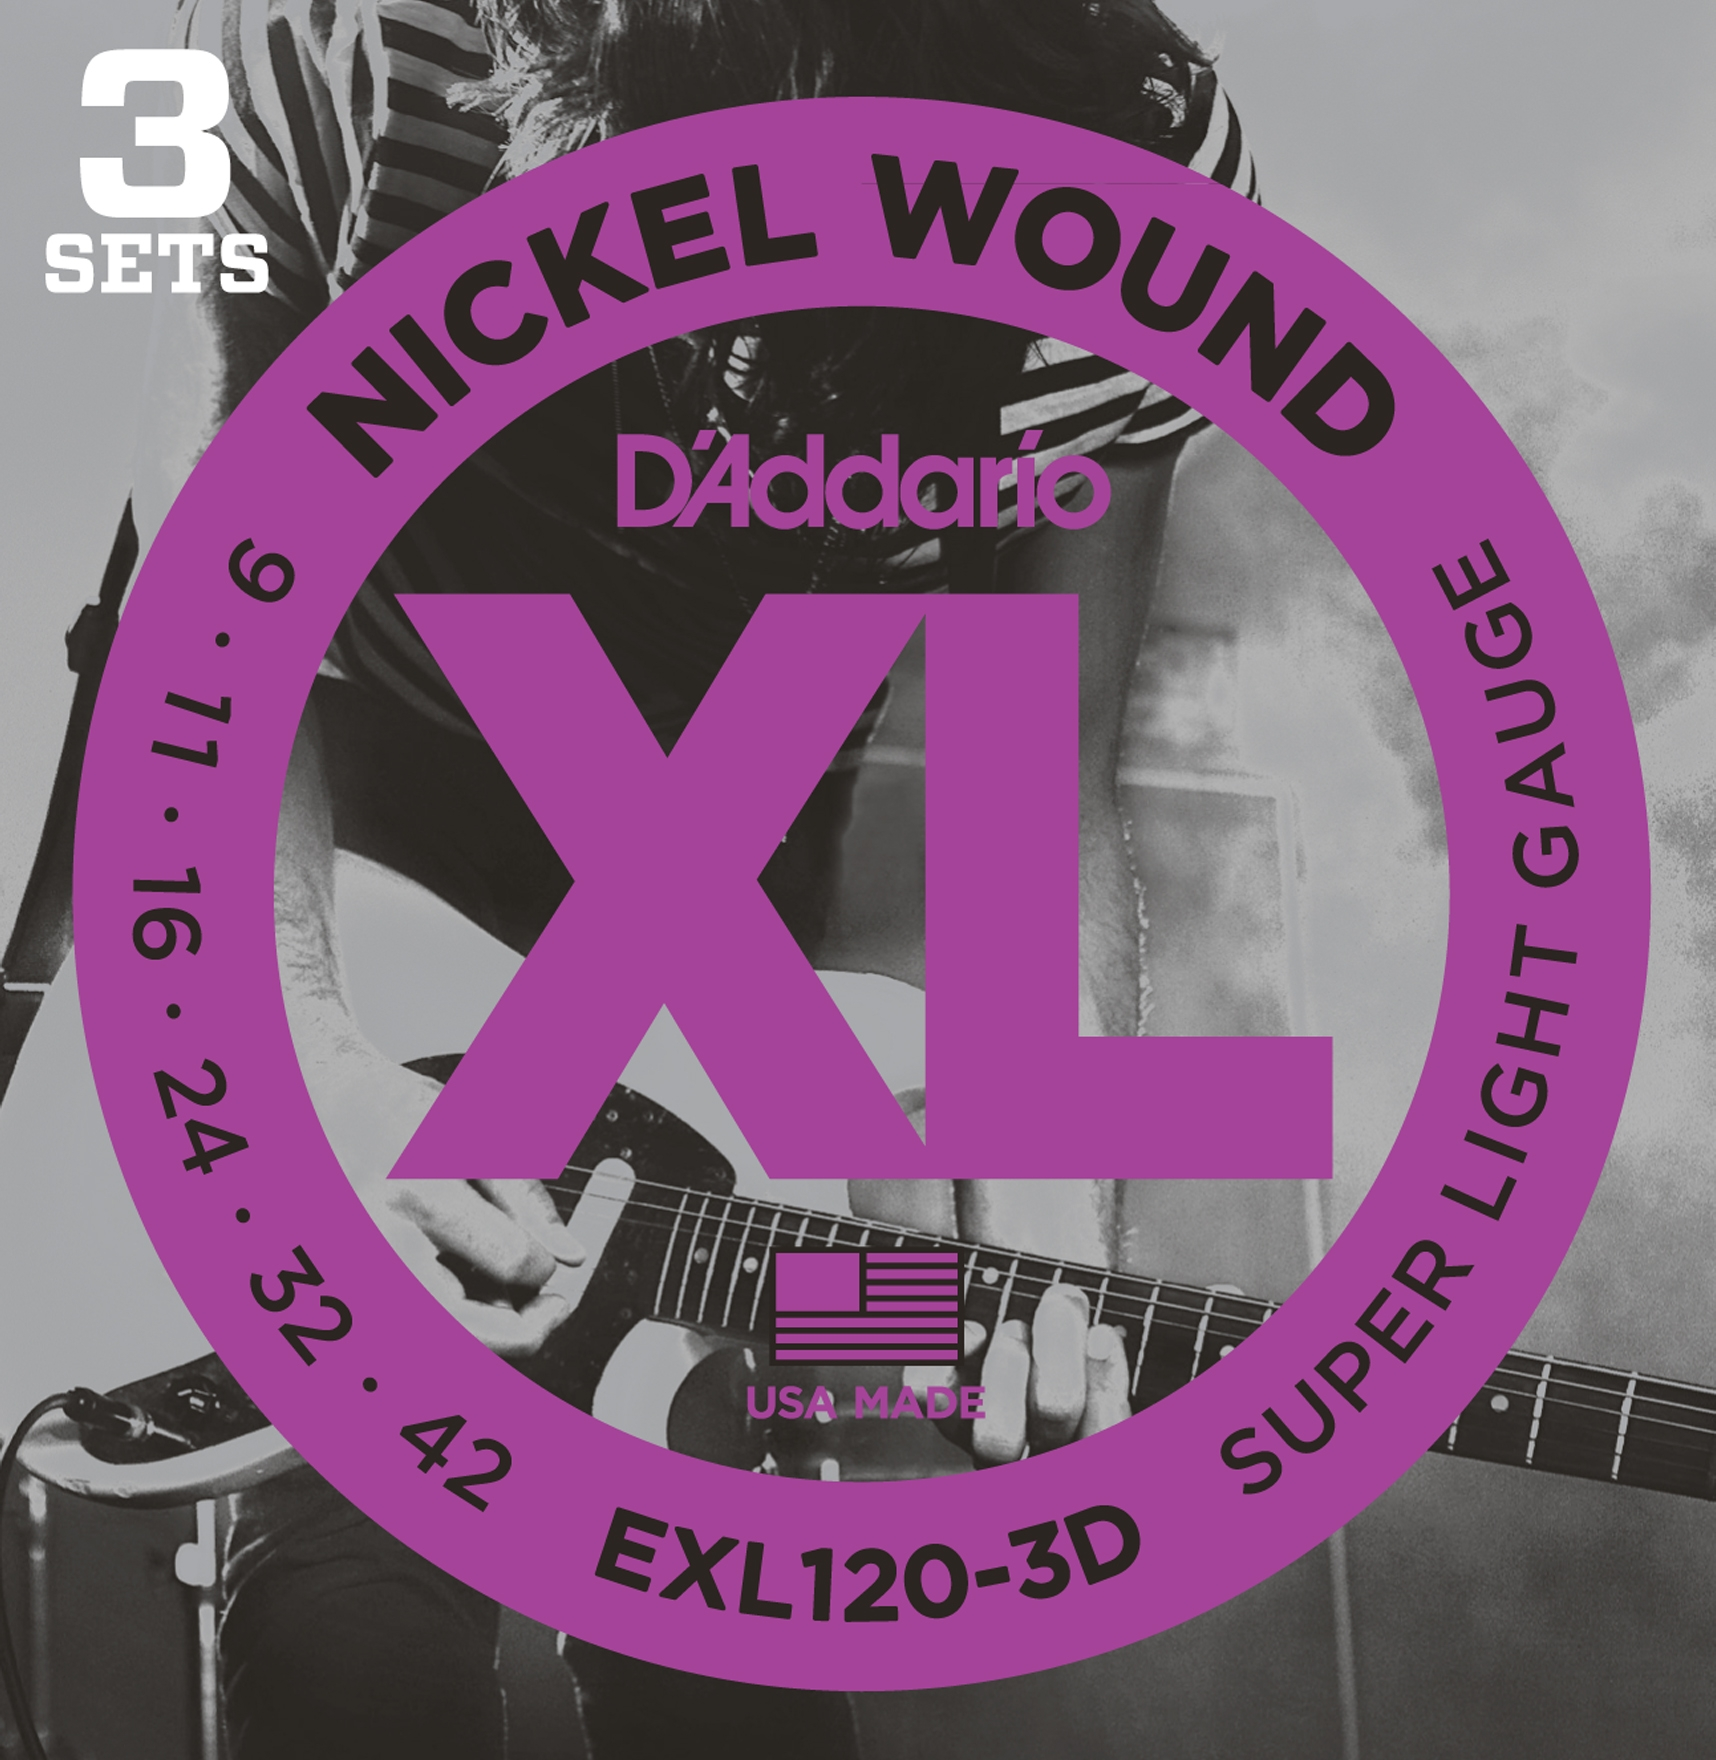 D'Addario EXL120-3D Set di Corde Rivestite in Nickel per Chitarra Elettrica, Super Light, 9-42, Conf